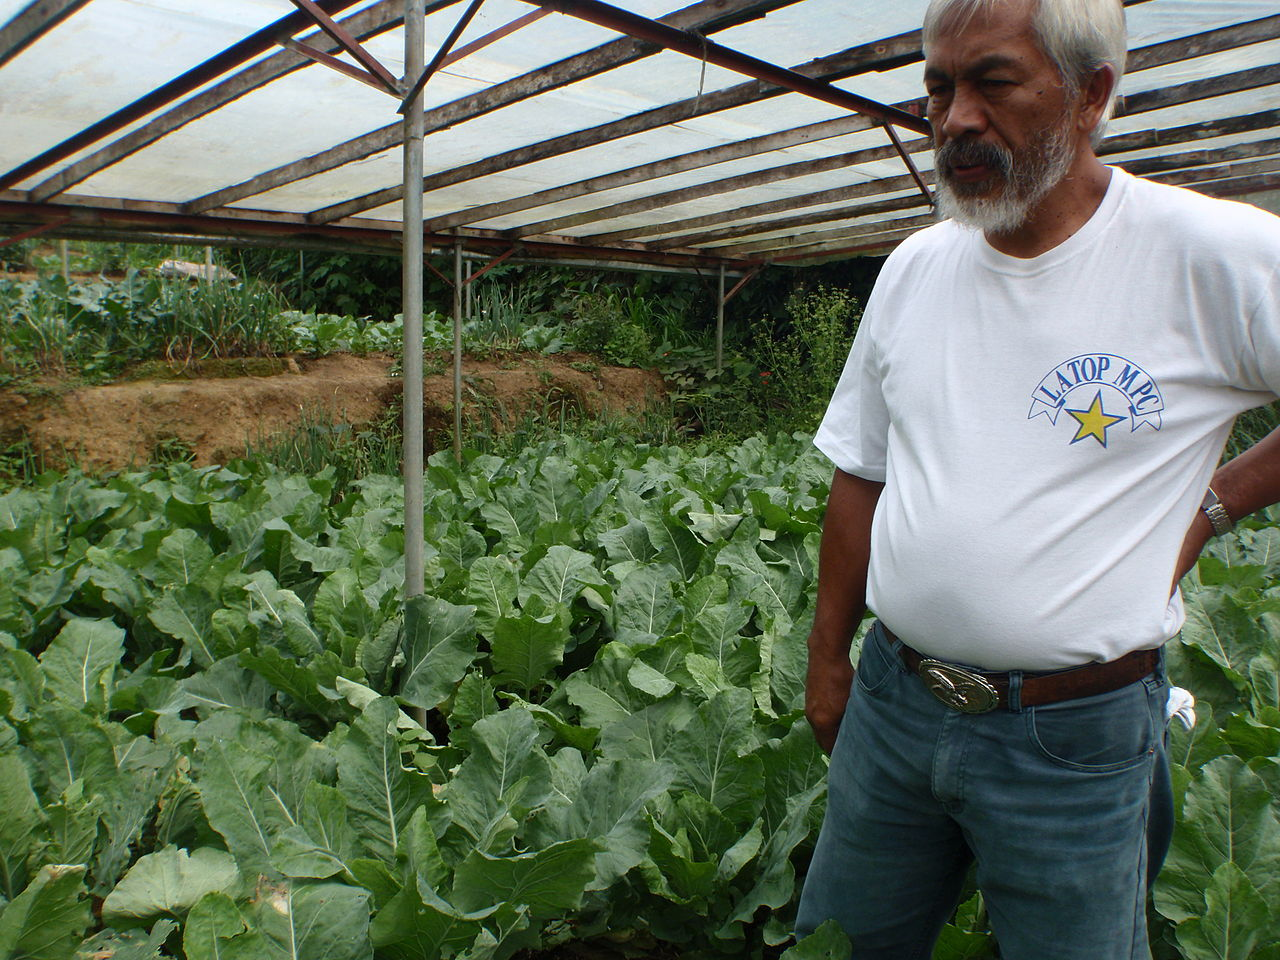 organic farming in the Philippines by Department of Foreign Affairs and Trade Wikimedia Commons